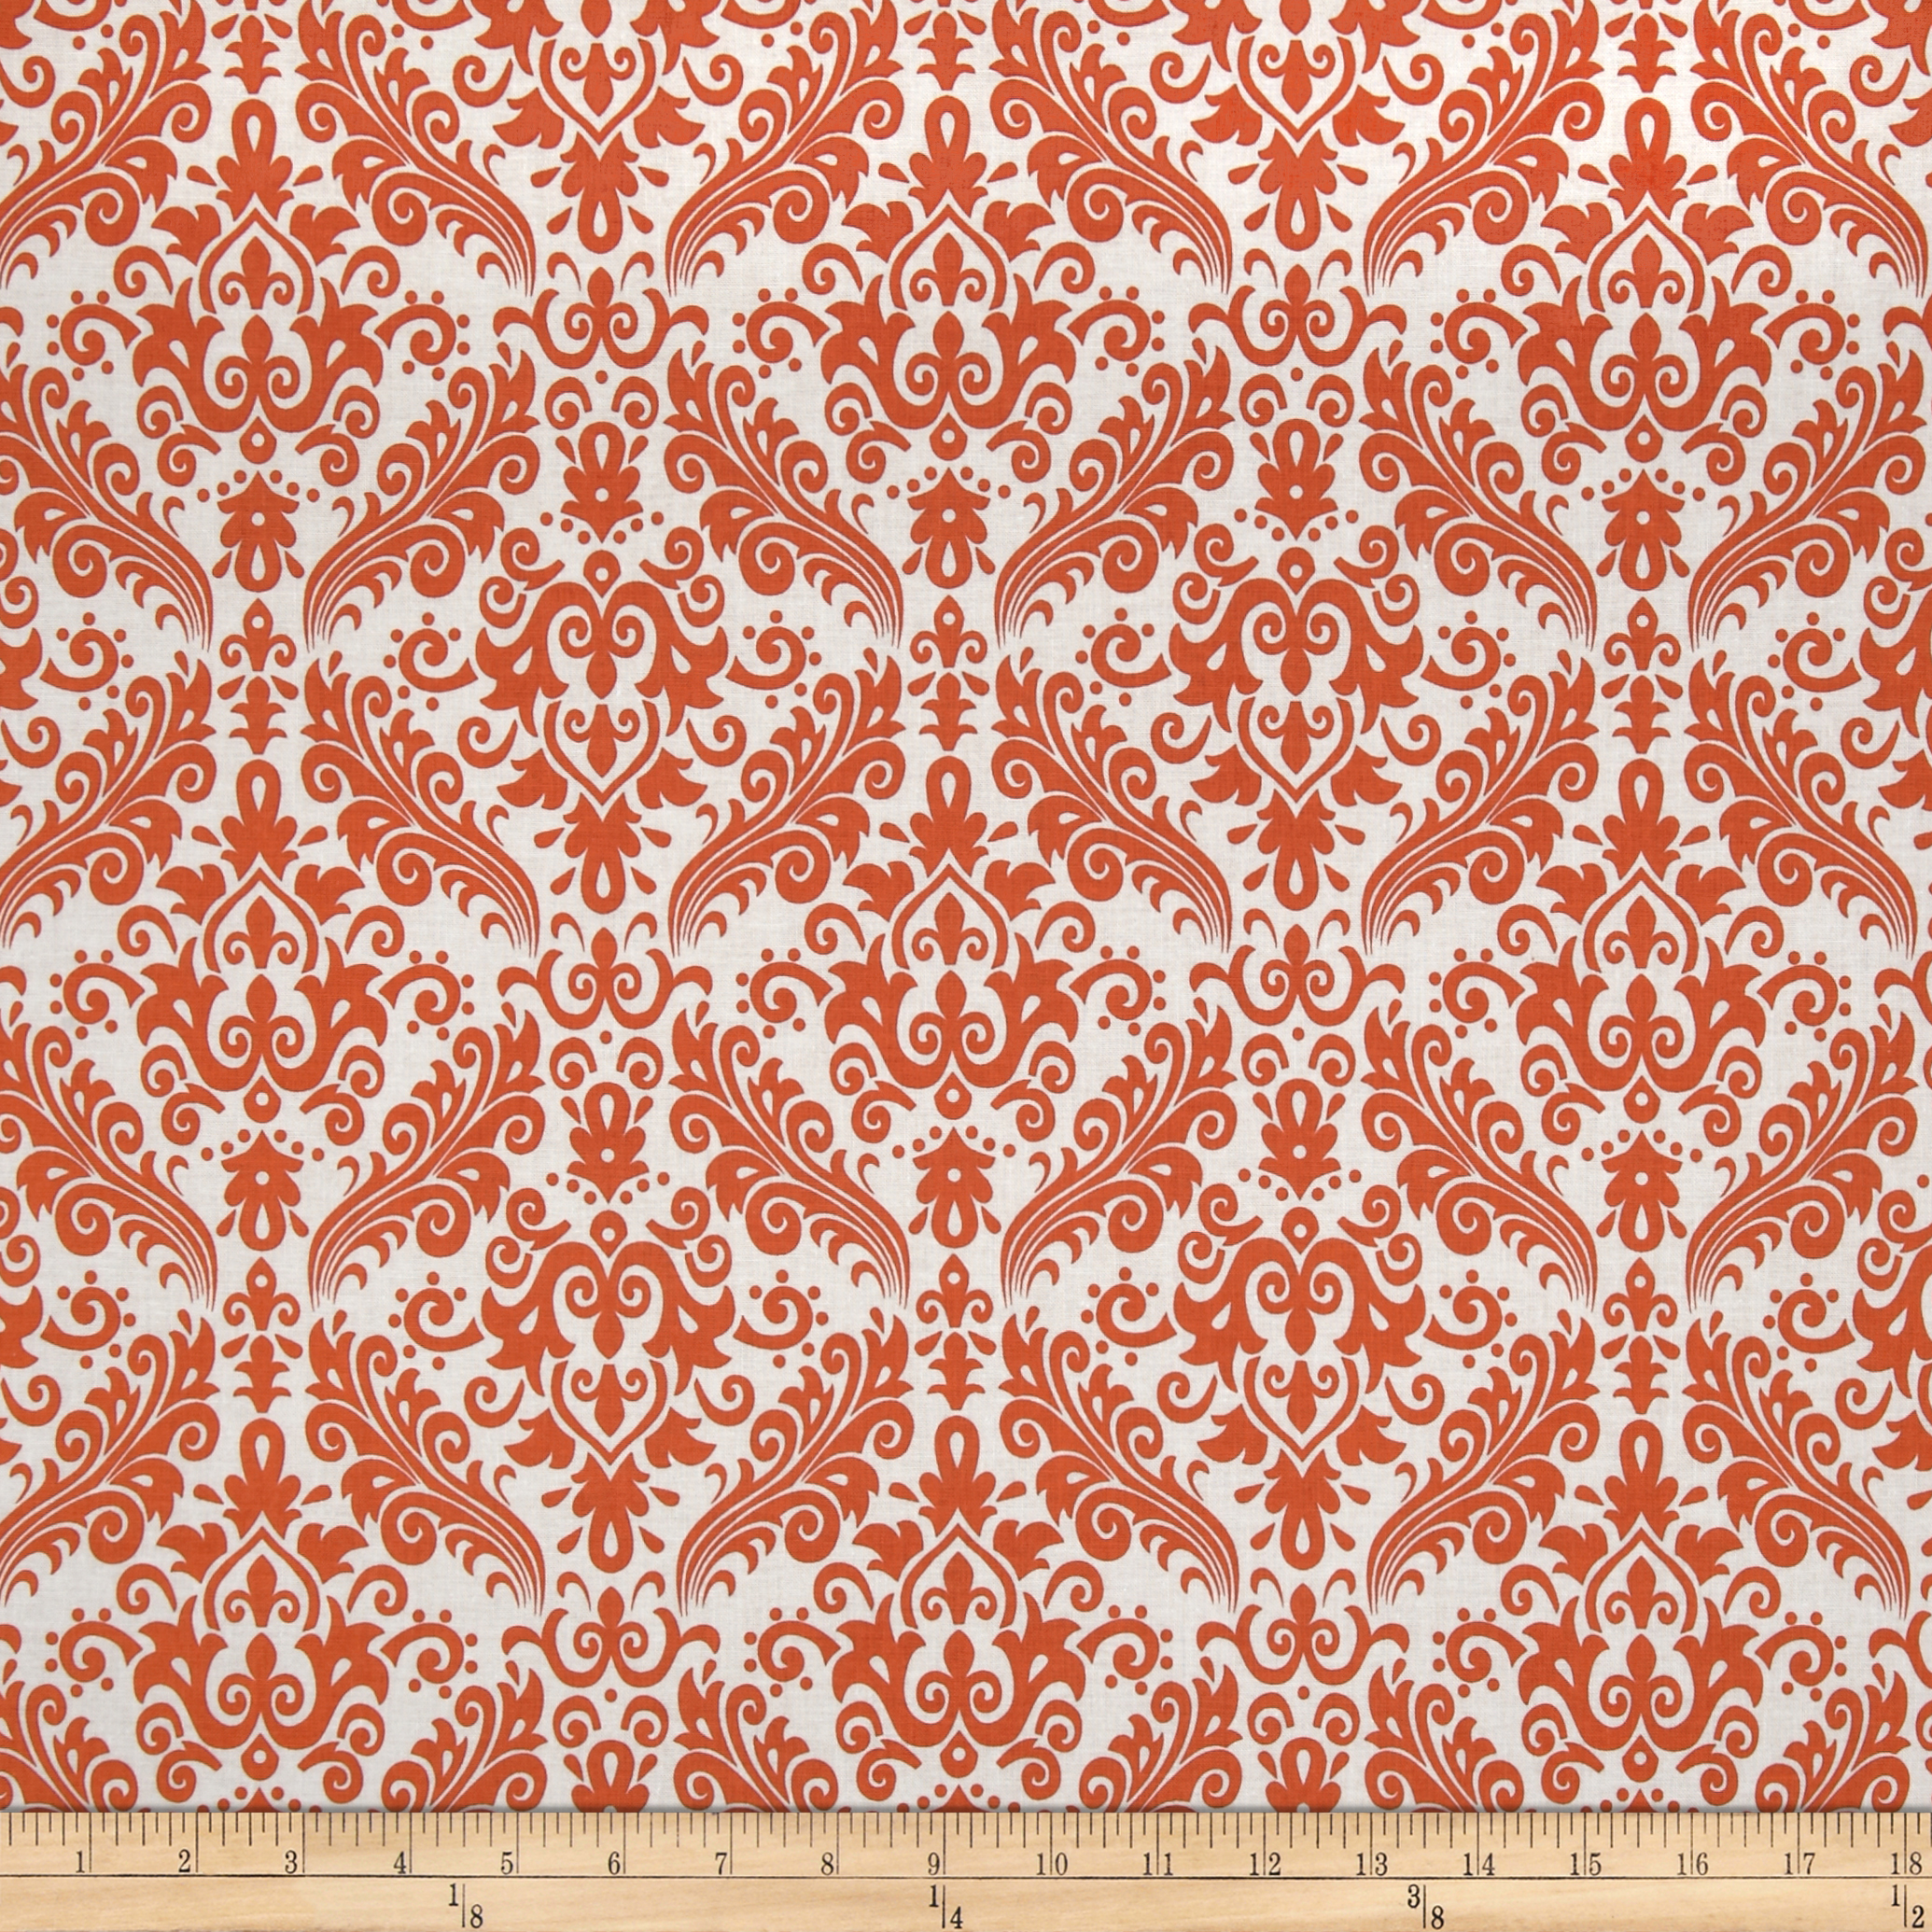 Riley Blake Medium Damask White/Orange Fabric